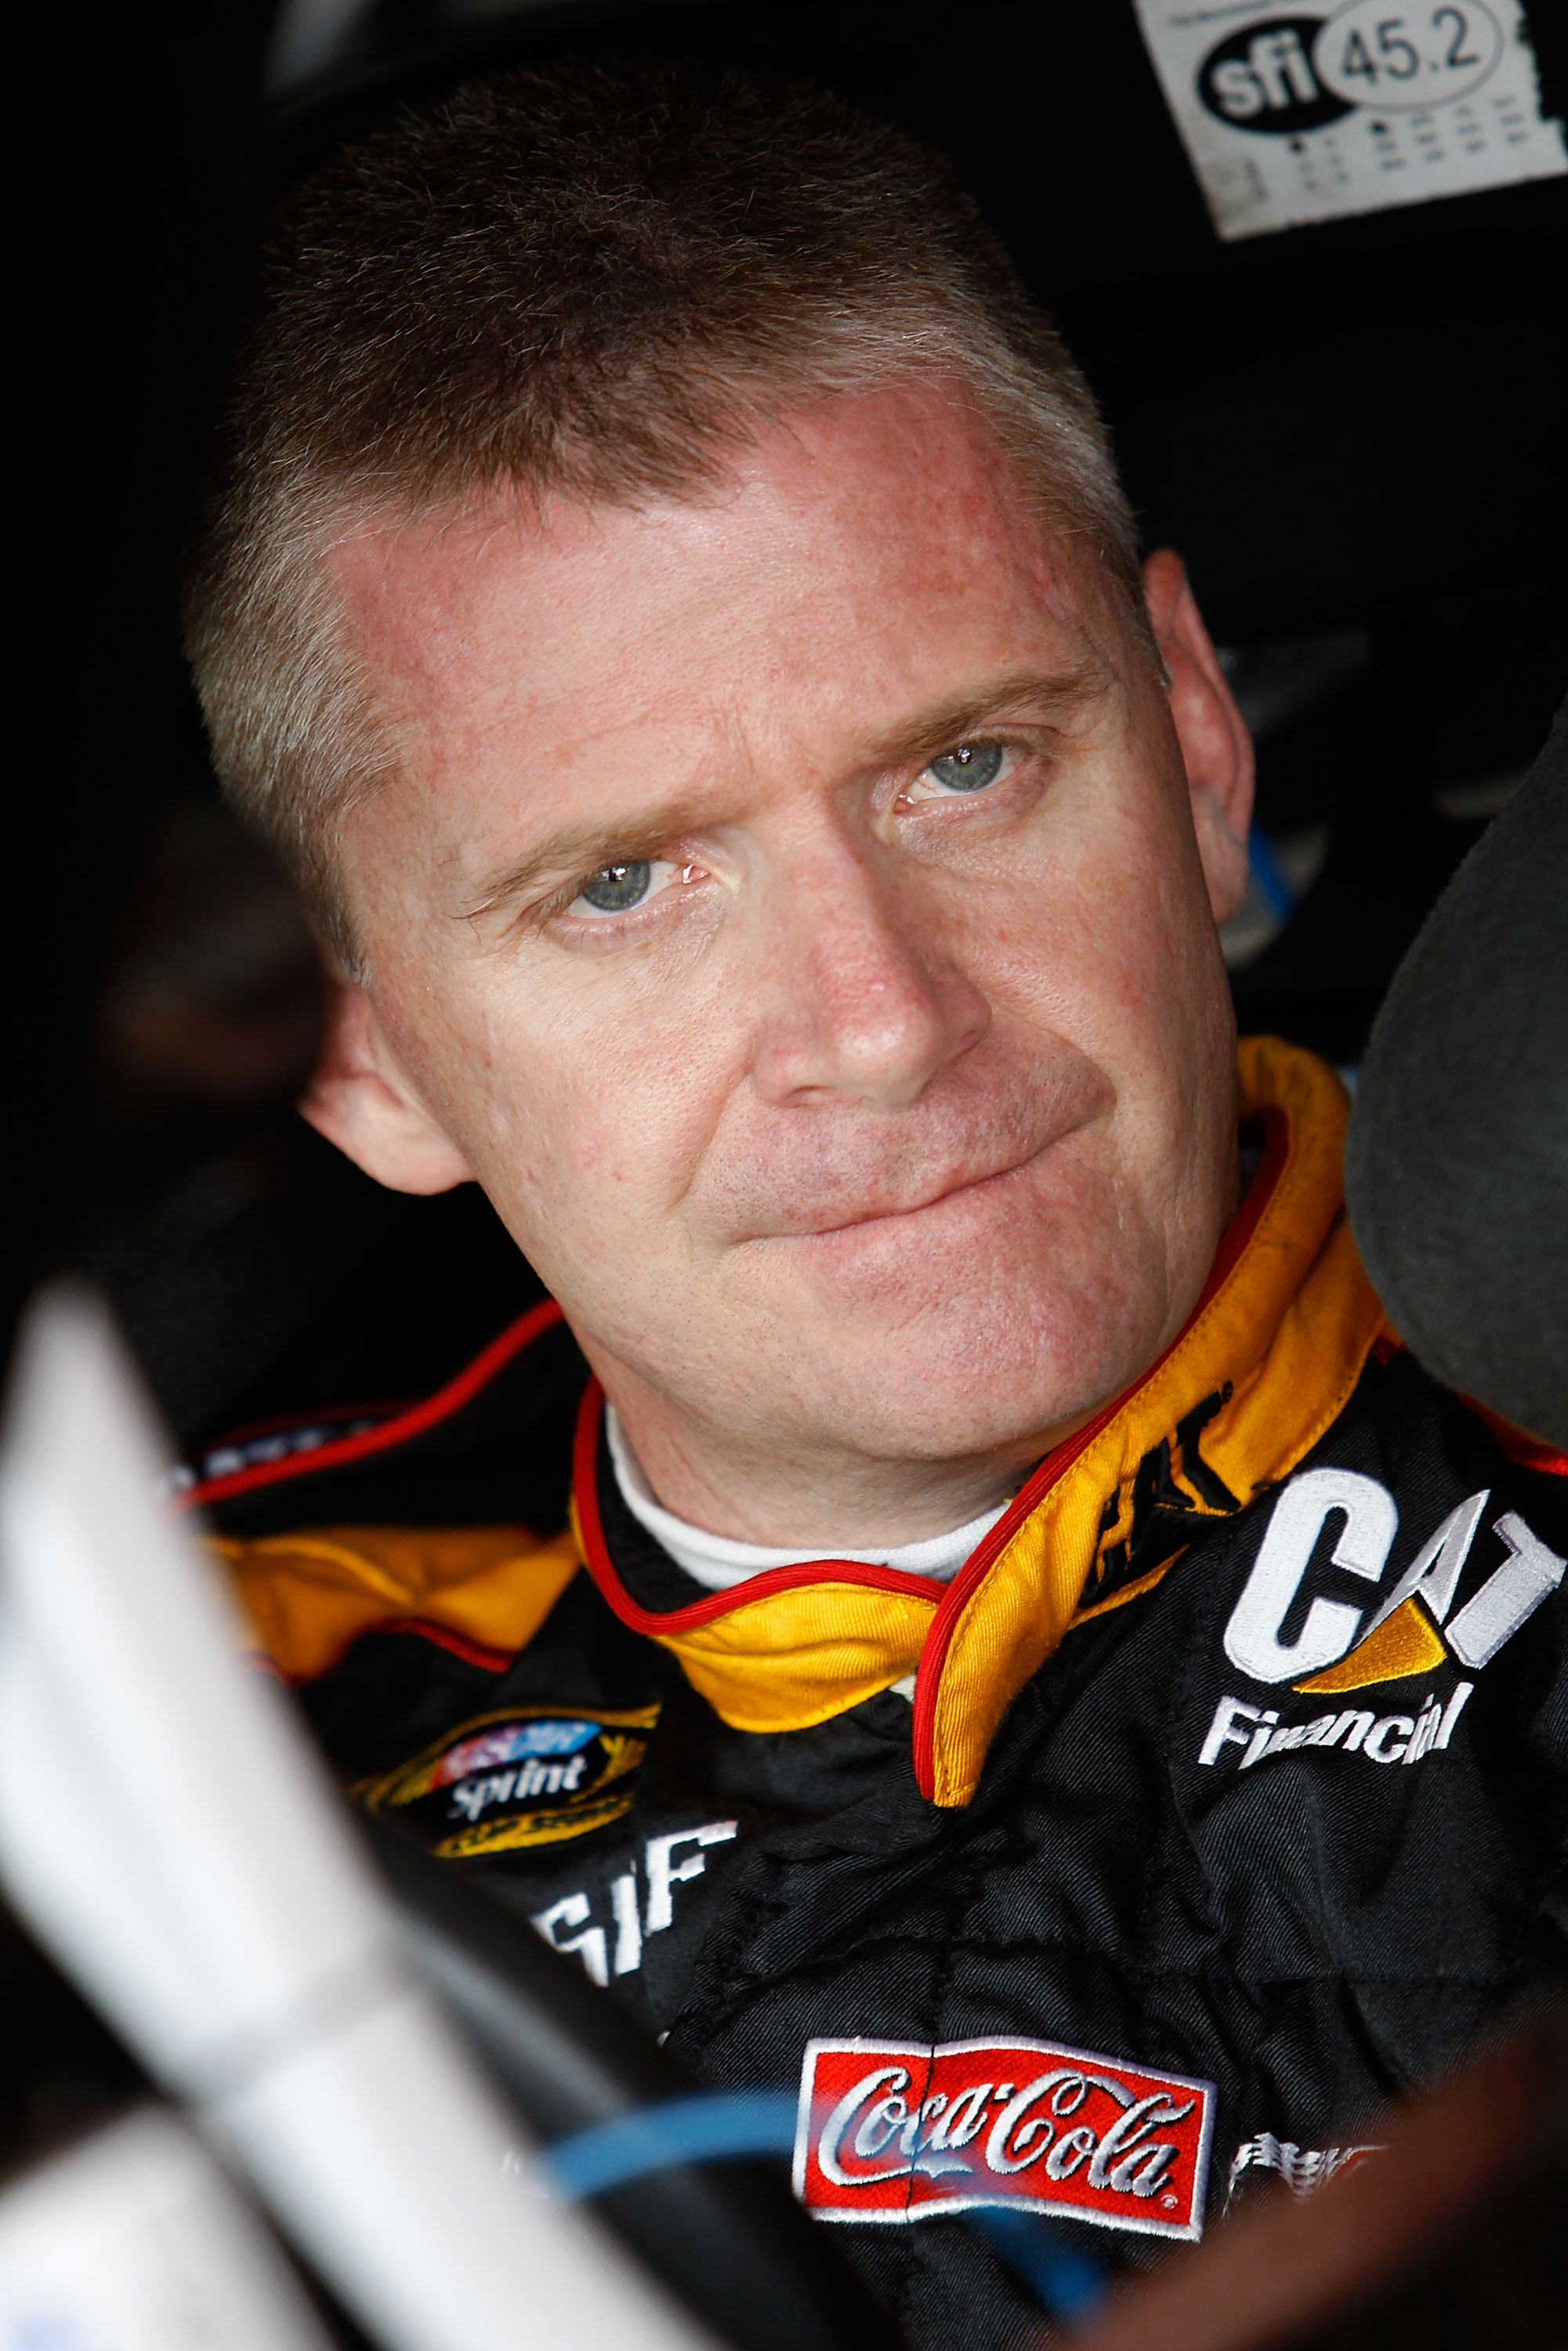 KANSAS CITY, KS - JUNE 03:  Jeff Burton, driver of the #31 Caterpillar Chevrolet, sits in his car in the garage area during practice for the NASCAR Sprint Cup Series STP 400 at Kansas Speedway on June 3, 2011 in Kansas City, Kansas.  (Photo by Todd Warsha